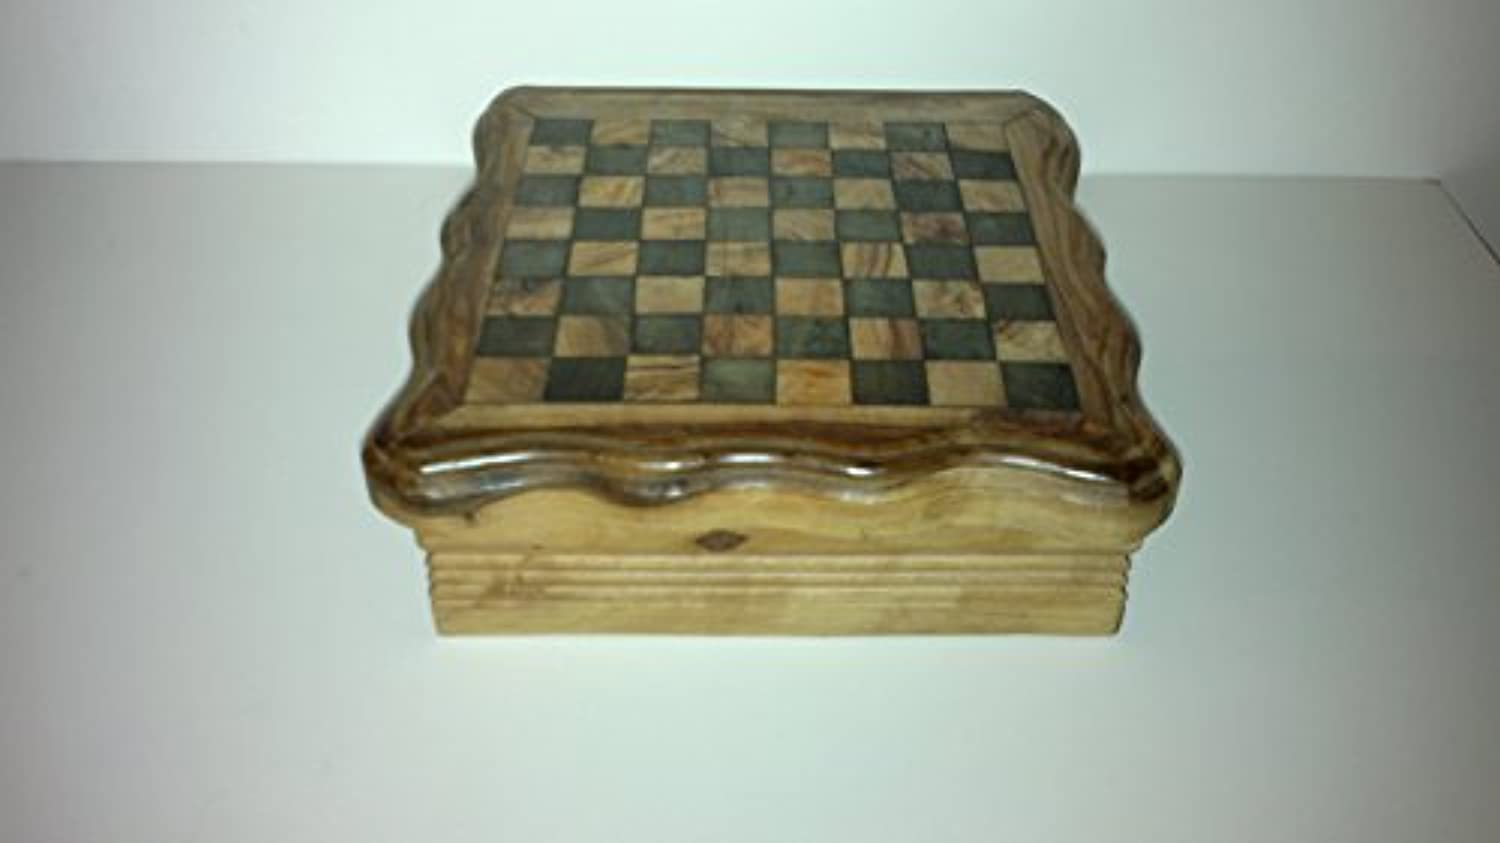 Naturally Med - Olive Wood Four Games Set / Compendium - Chess, Checkers, Dominoes, Solitaire by Naturally Med [並行輸入品]